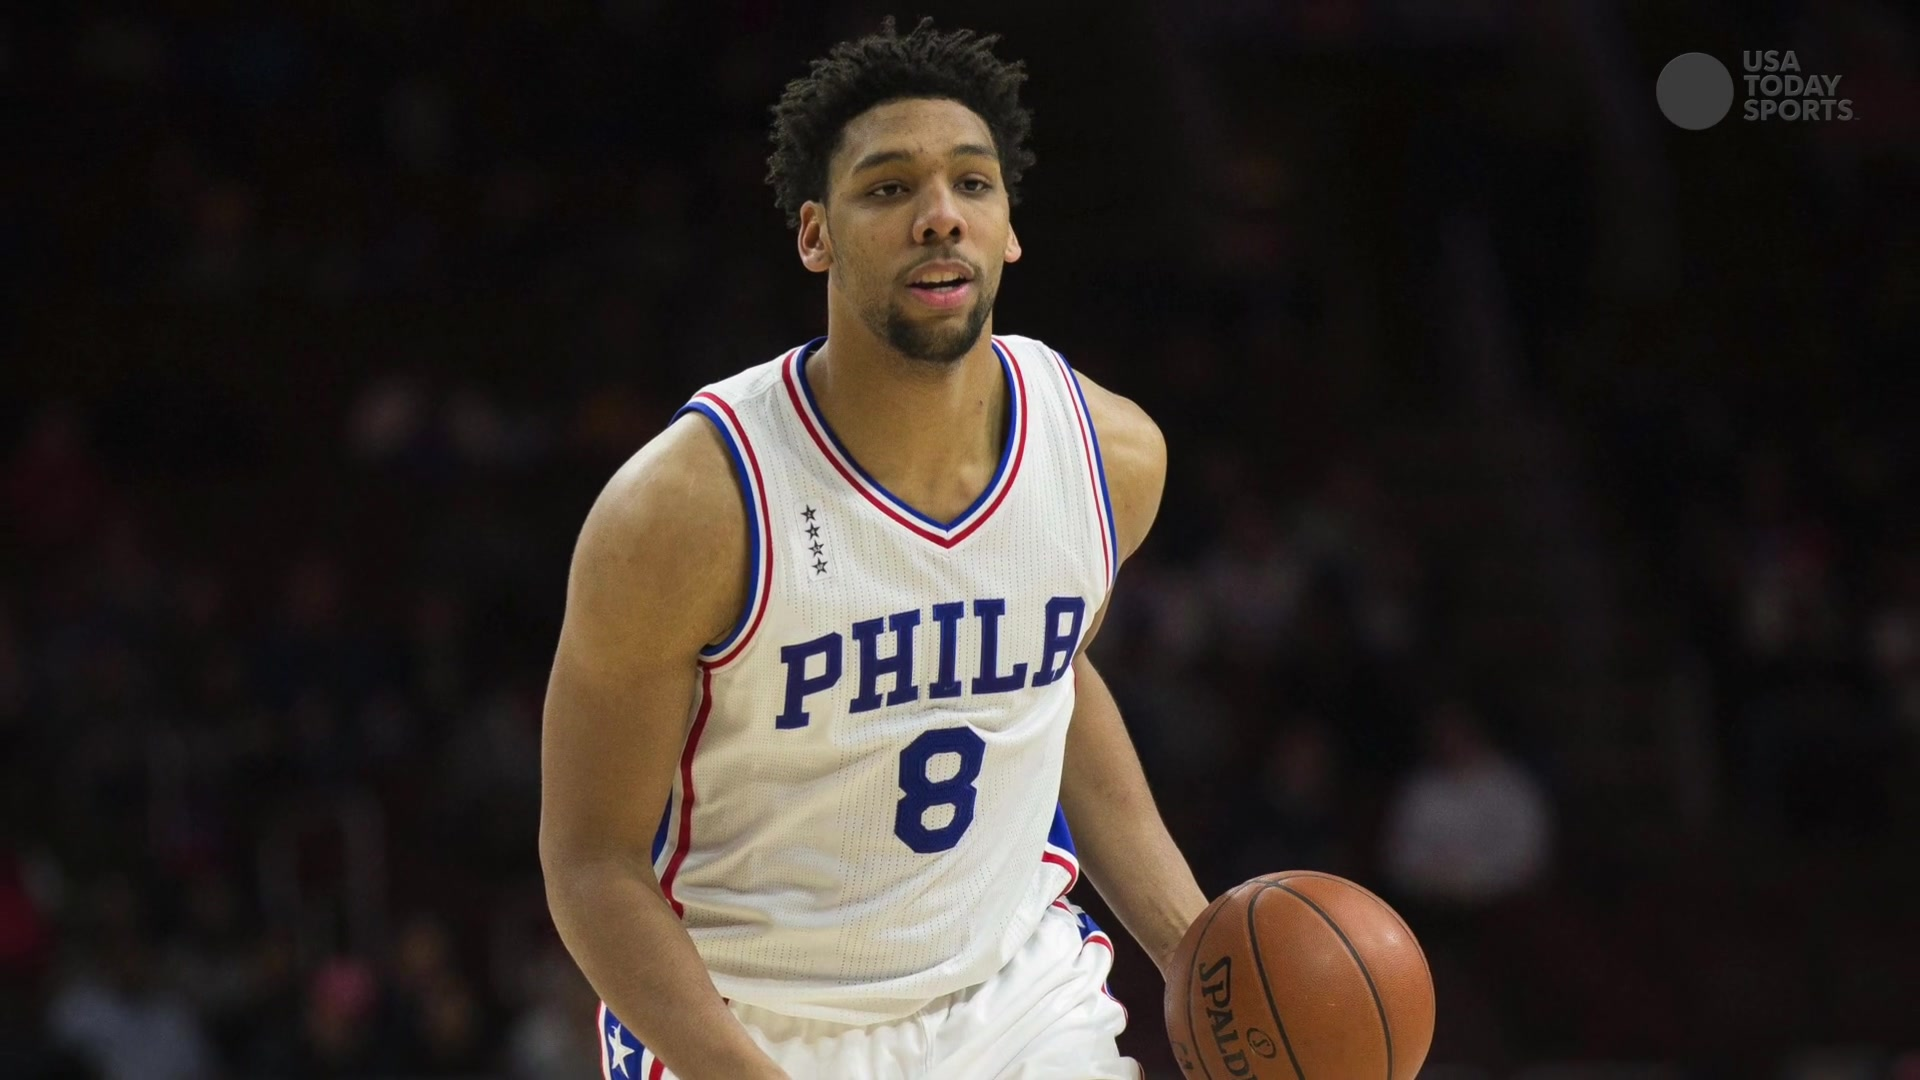 Jahlil Okafor to Miss Remainder of Season